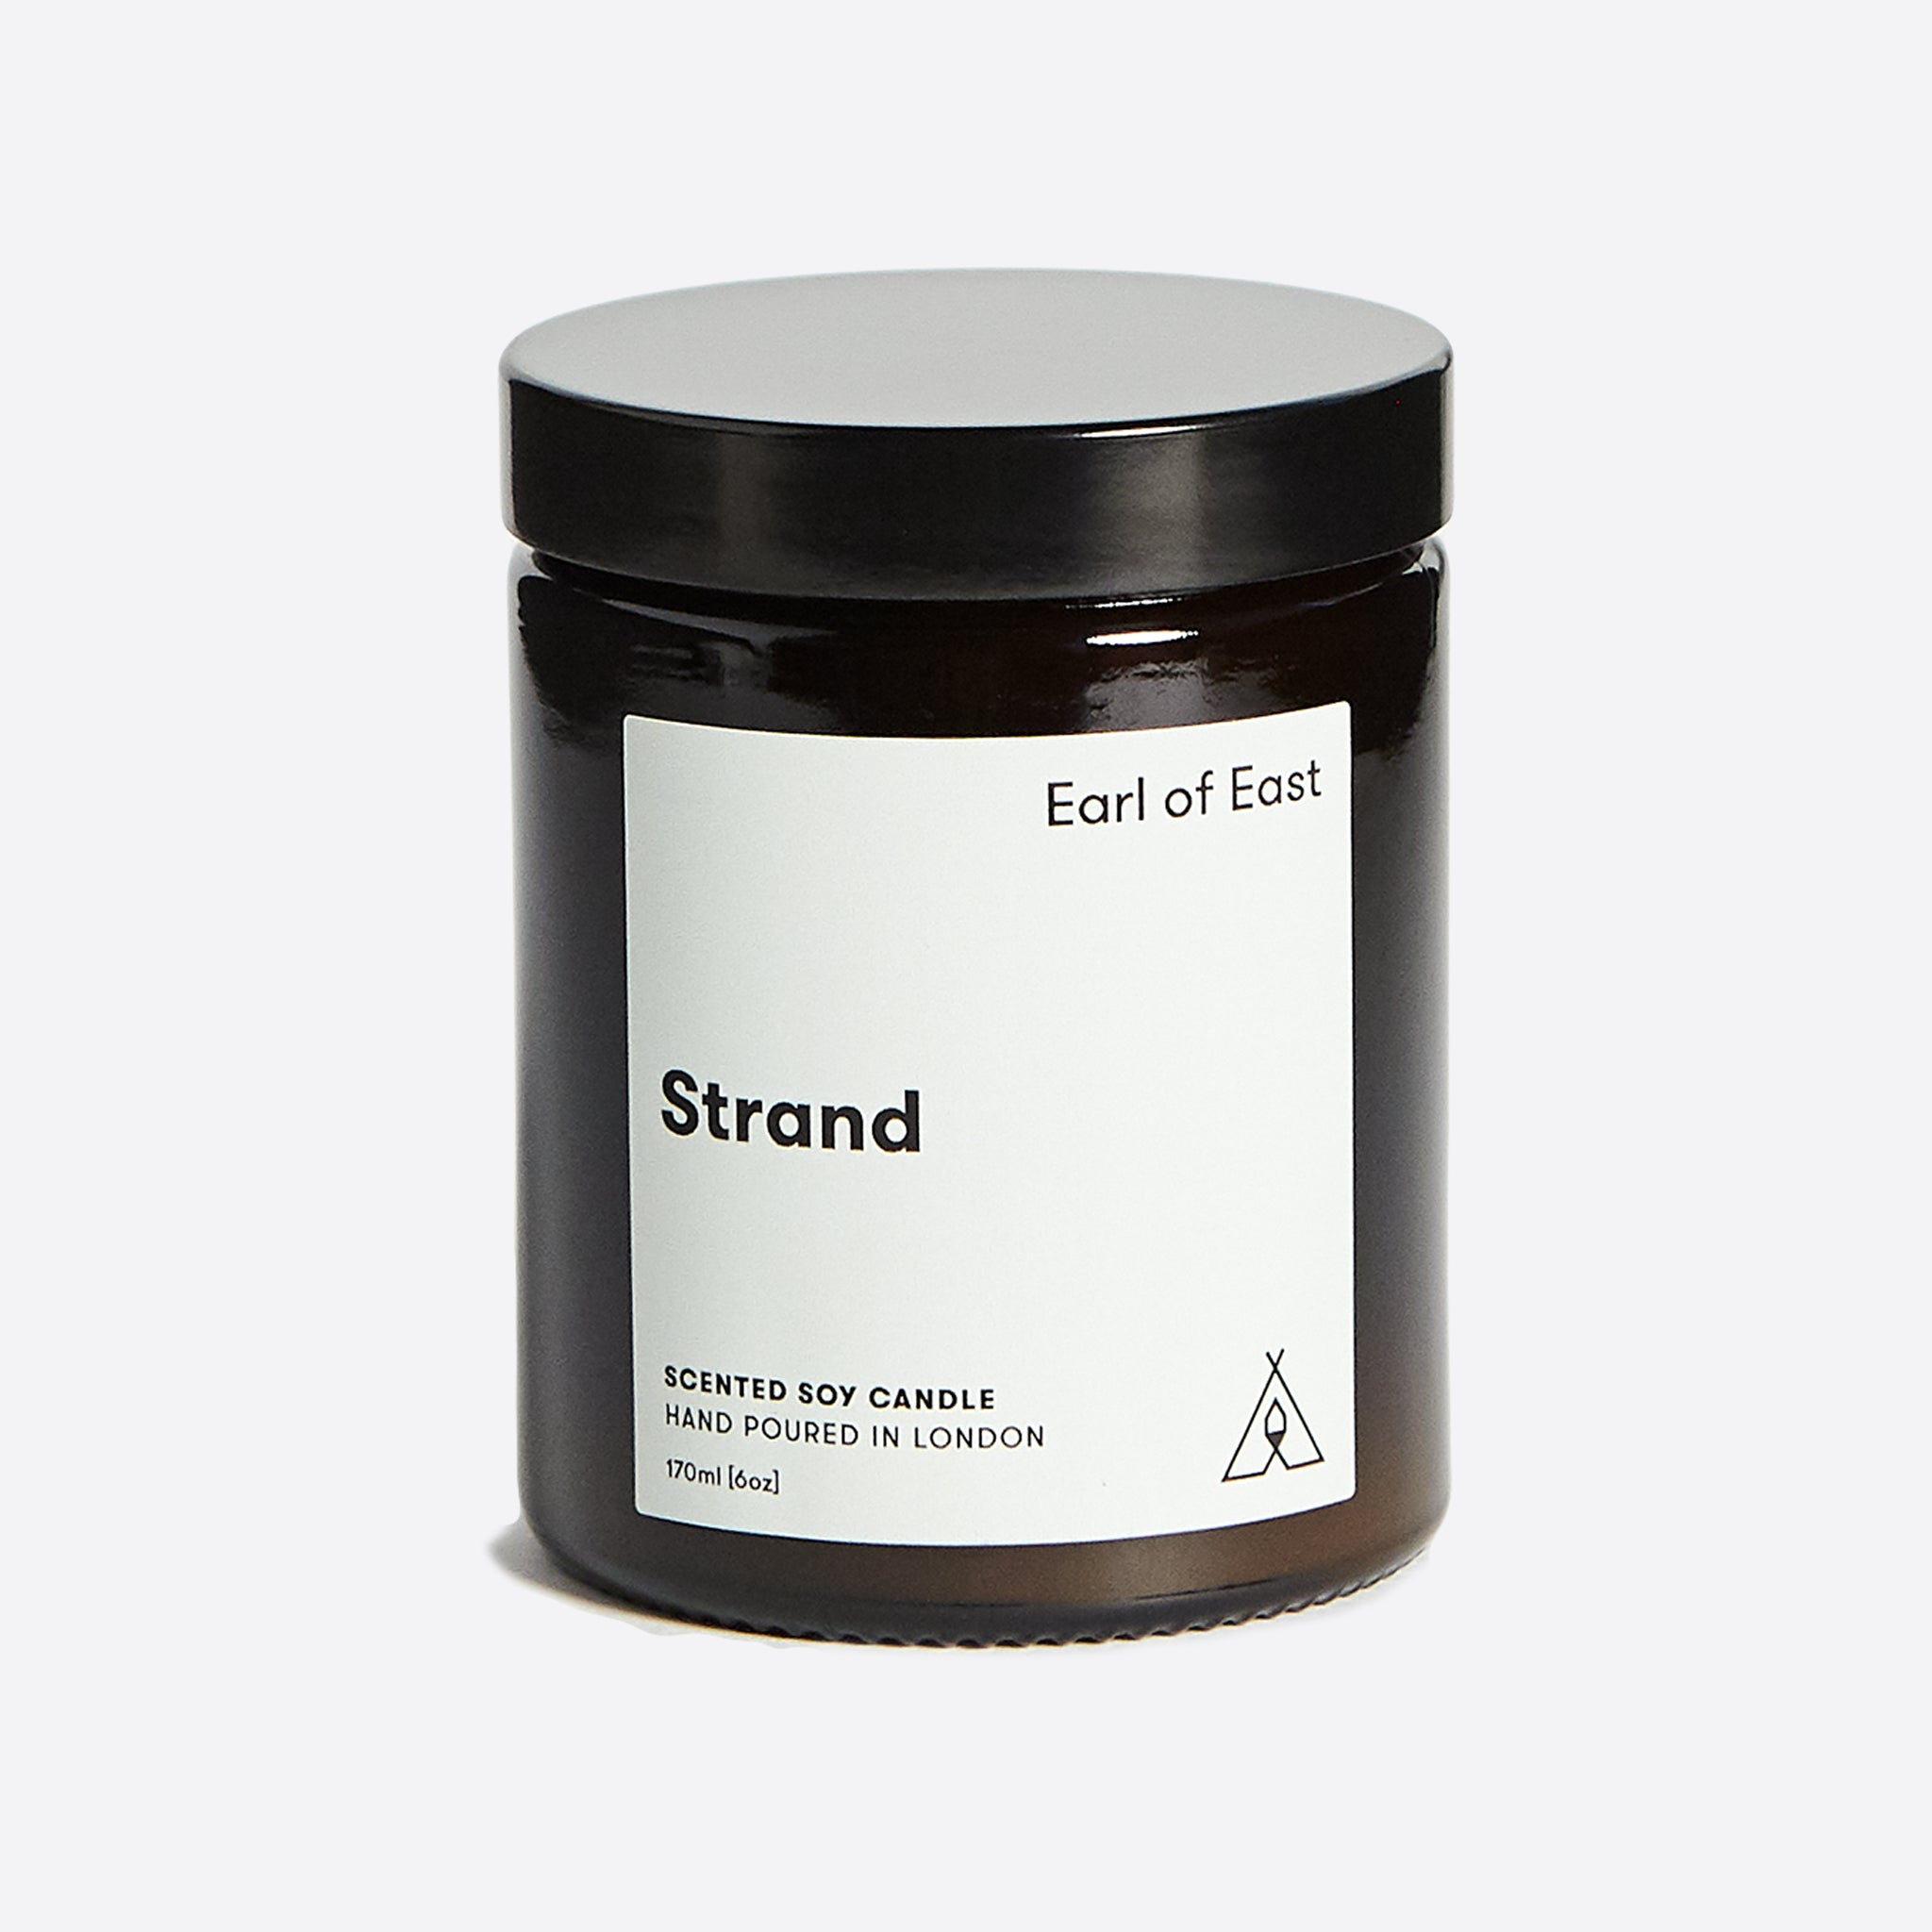 Earl of East Soy Wax Candle - Strand - Medium